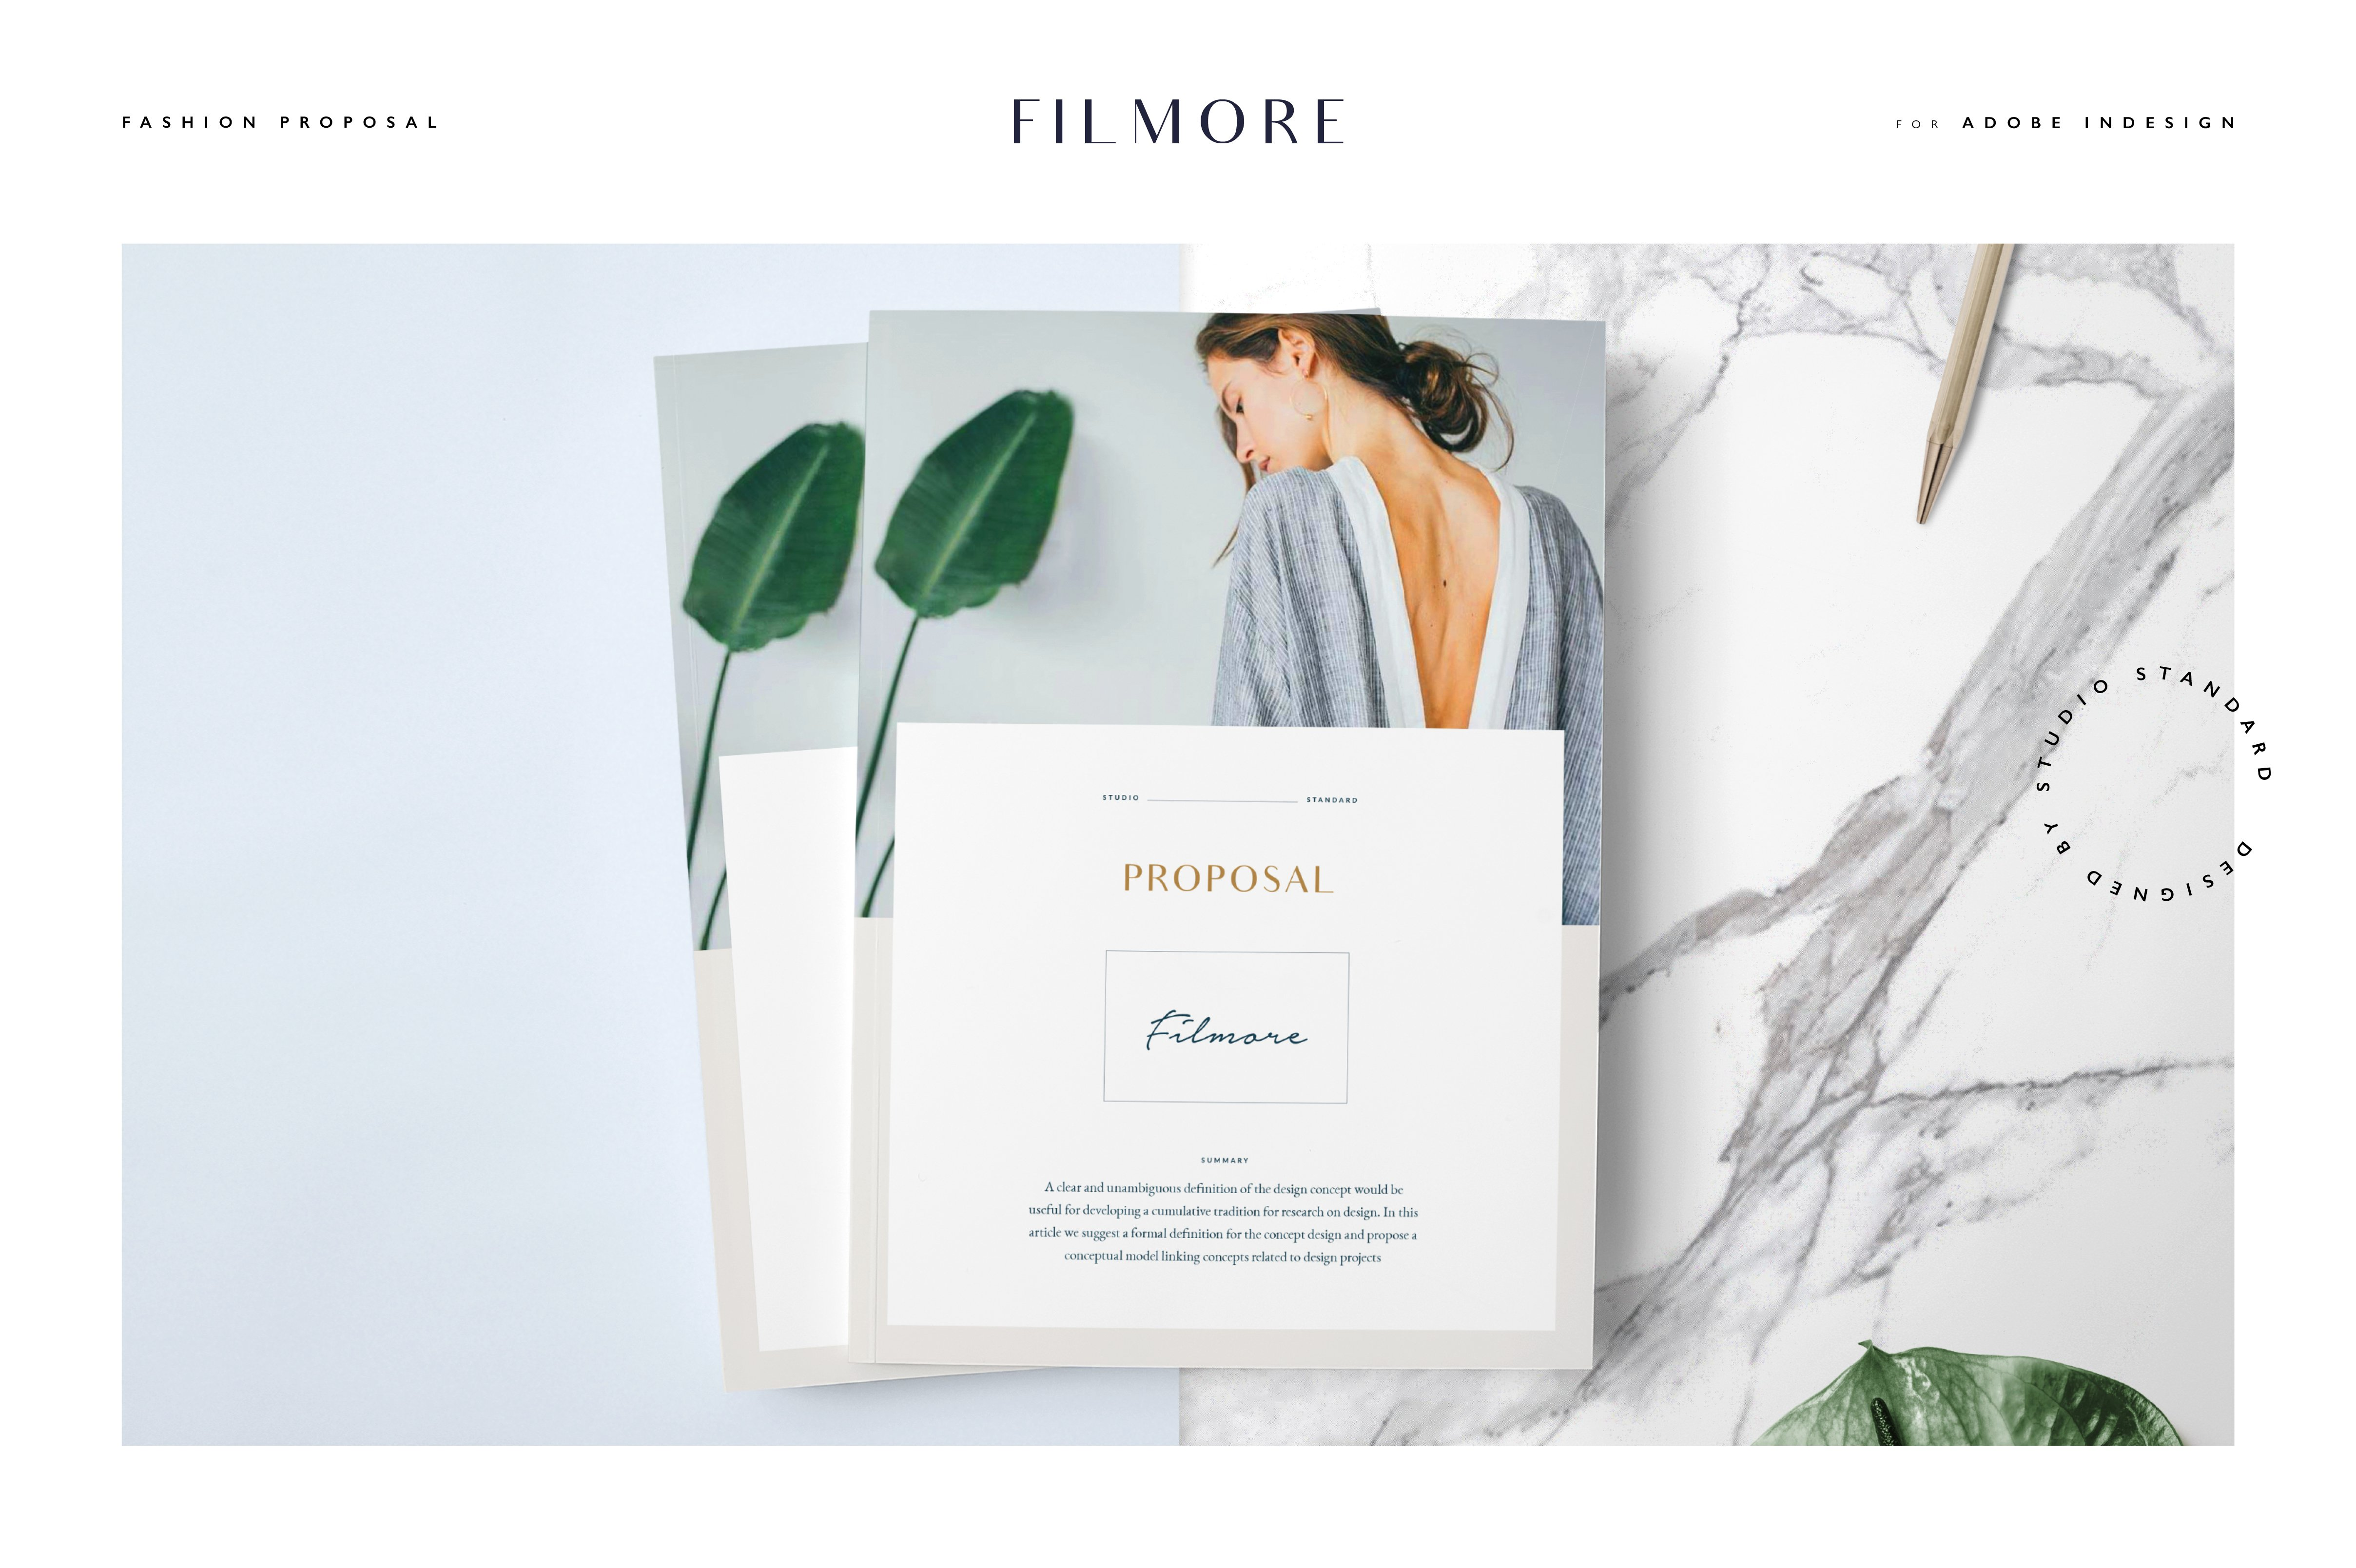 fashion brochure templates - filmore fashion proposal brochure templates creative